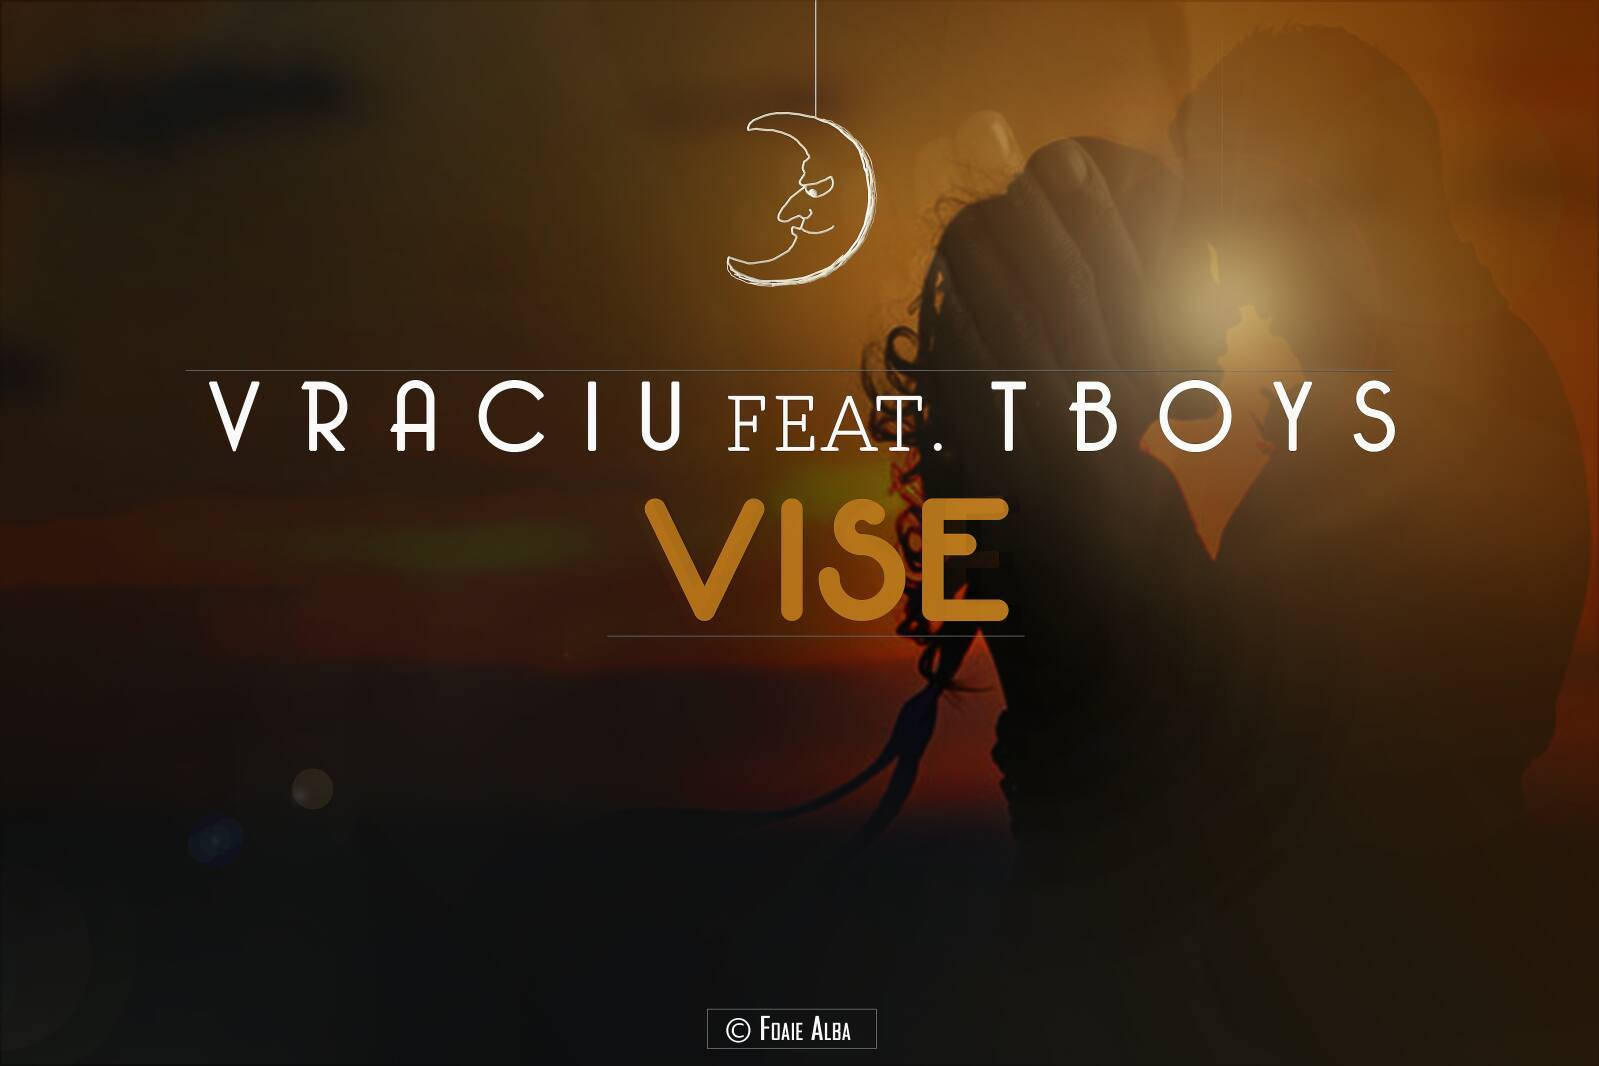 Vraciu' feat. TBoys – Vise in doi